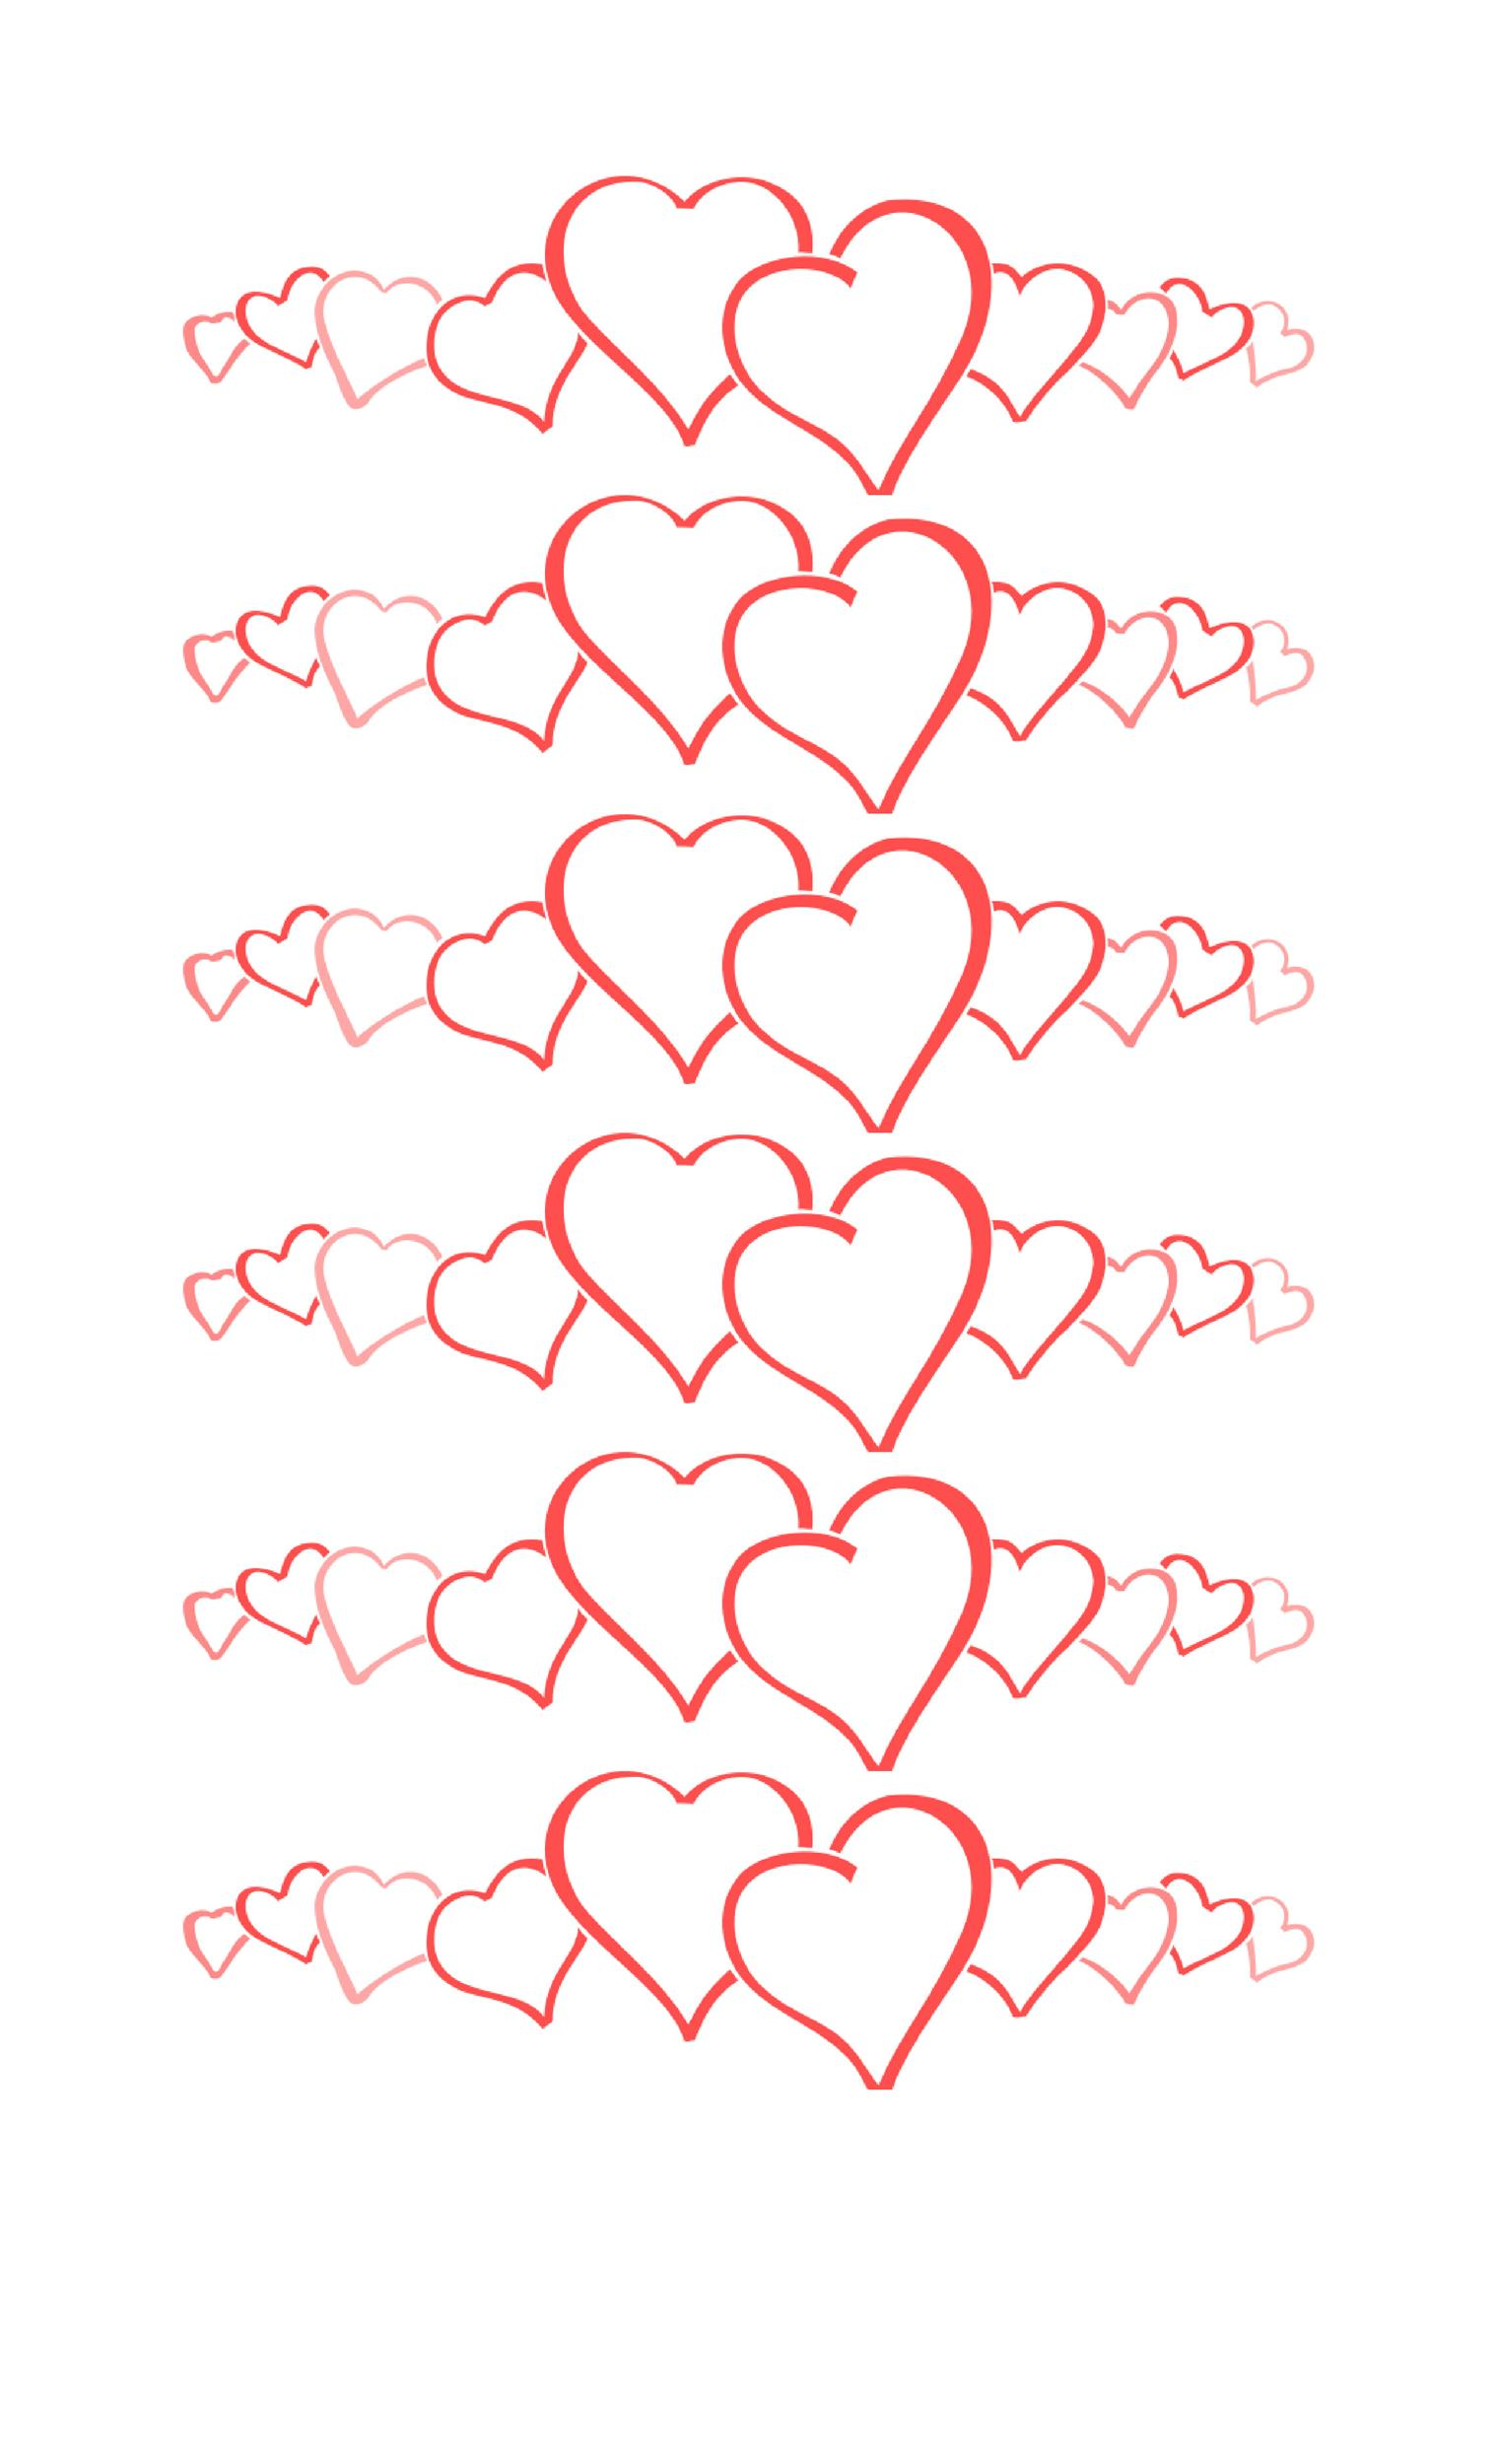 Heart Shape Worksheet Printables Printable Worksheets And Activities For Teachers Parents Tutors And Homeschool Families